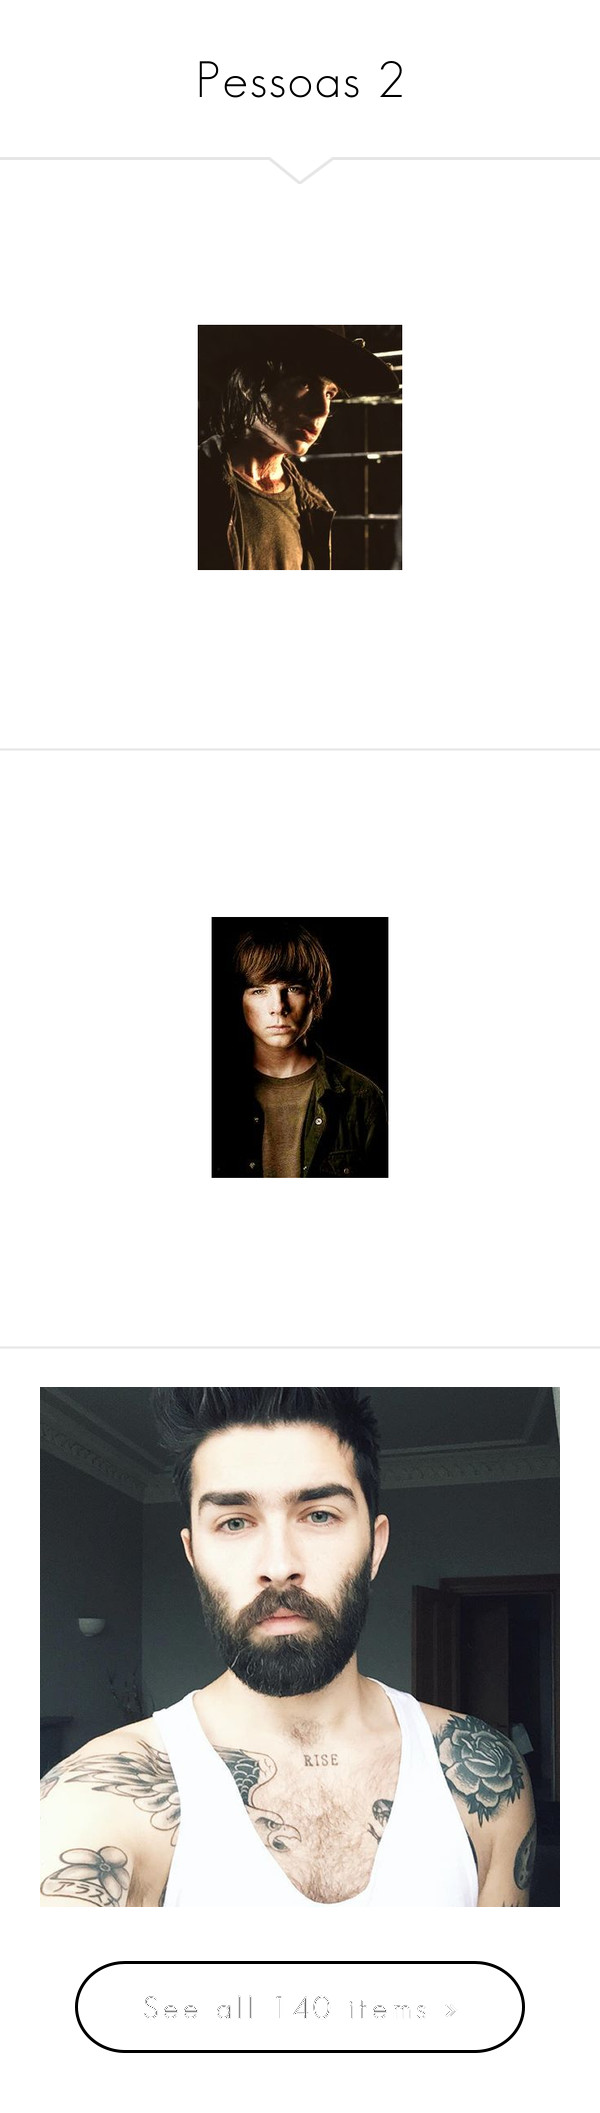 """""""Pessoas 2"""" by beatriz-ceifadora on Polyvore featuring walking dead, chandler riggs, the walking dead, people, guys, boys, pictures, anons, home e home decor"""